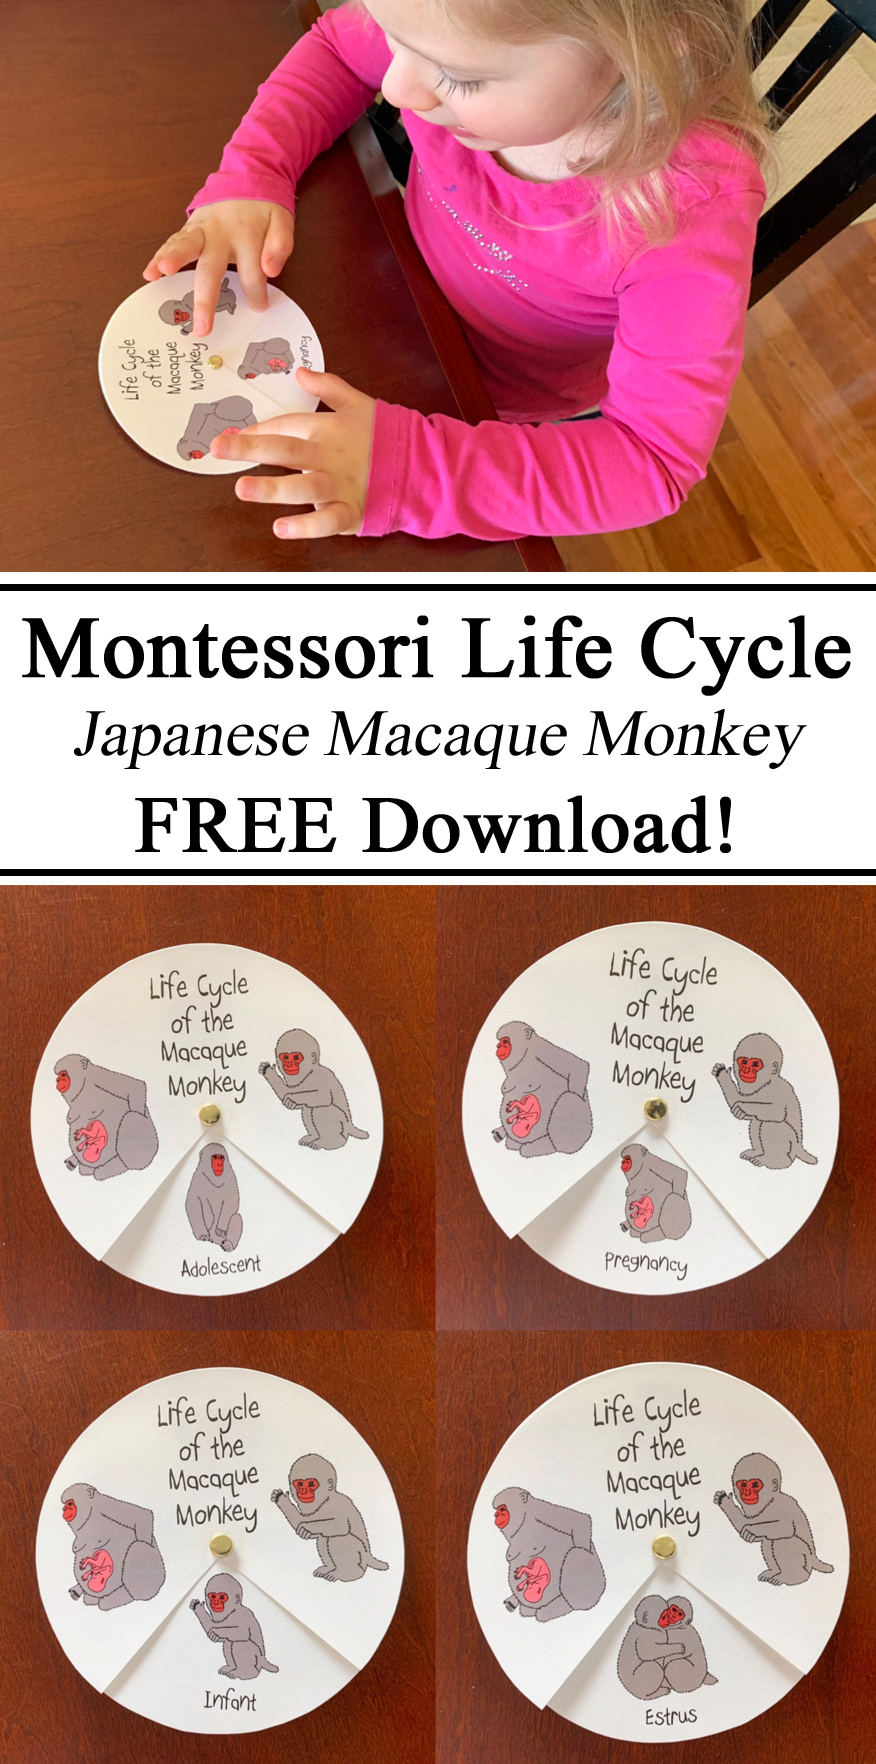 Montessori Inspired Ideas Inspiration Life Cycle Japan Japanese Macaque Monkey Snow Monkey Spinner DIY Free Download Printables Printable Resources Homeschool Homeschooling #travelingthroughlearning little passports Culture Global Citizens Learning Educational Waldorf Preschool Teacher Kindergarten PreK Early Childhood Education STEM STEAM How to